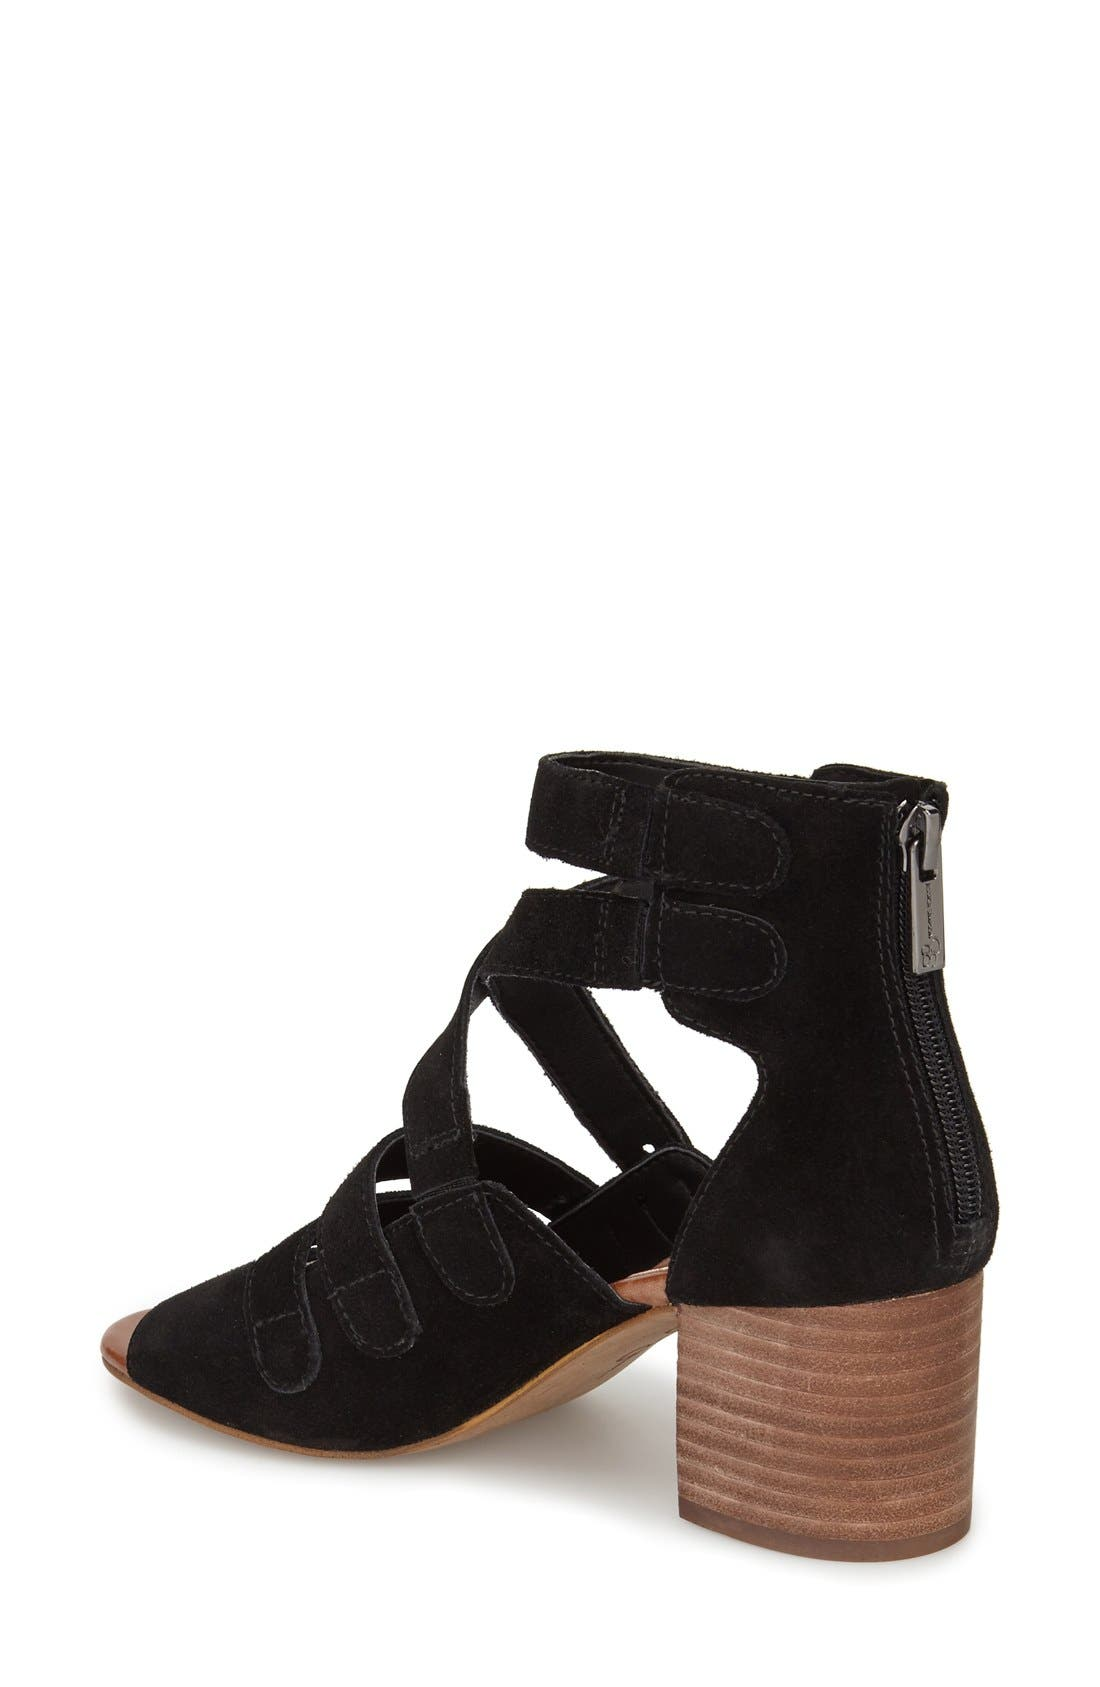 Alternate Image 2  - Jessica Simpson Halacie Ankle Strap Sandal (Women)